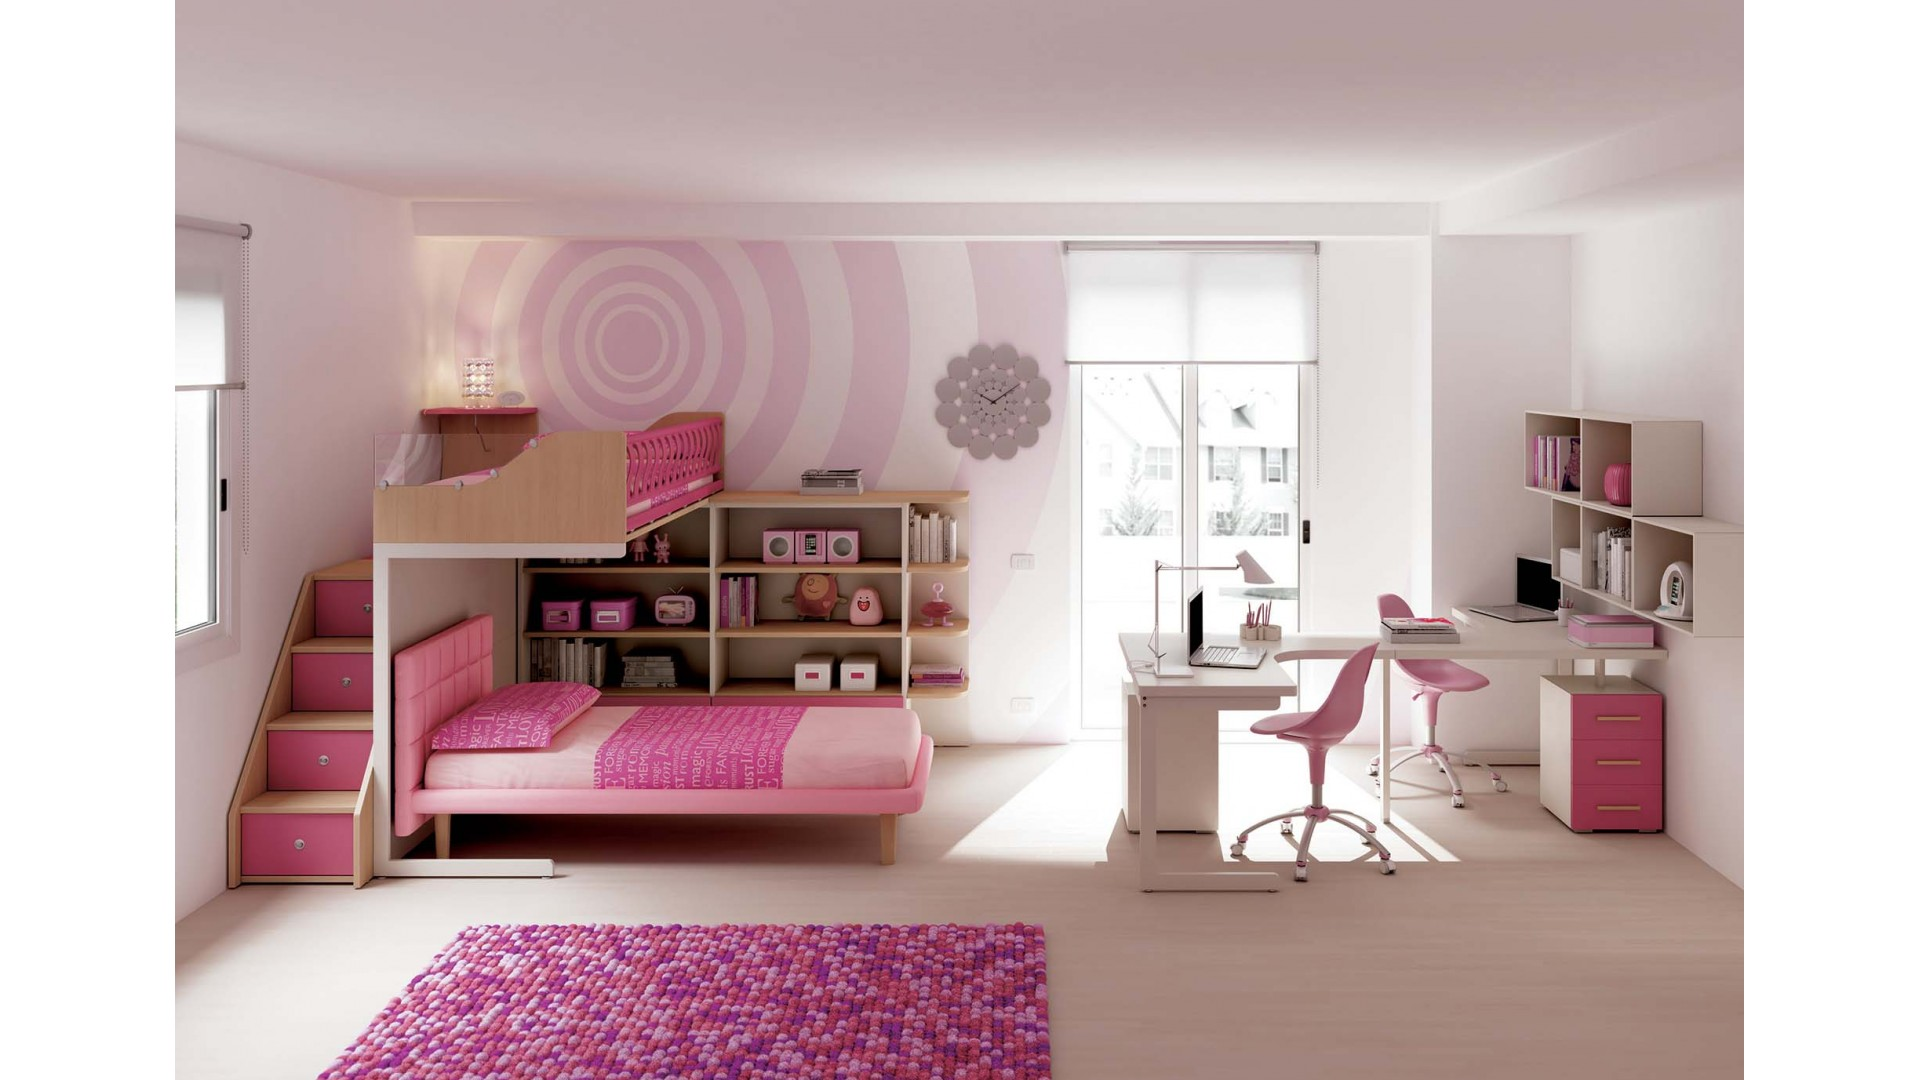 chambre enfant avec lits superpos s fille moretti. Black Bedroom Furniture Sets. Home Design Ideas